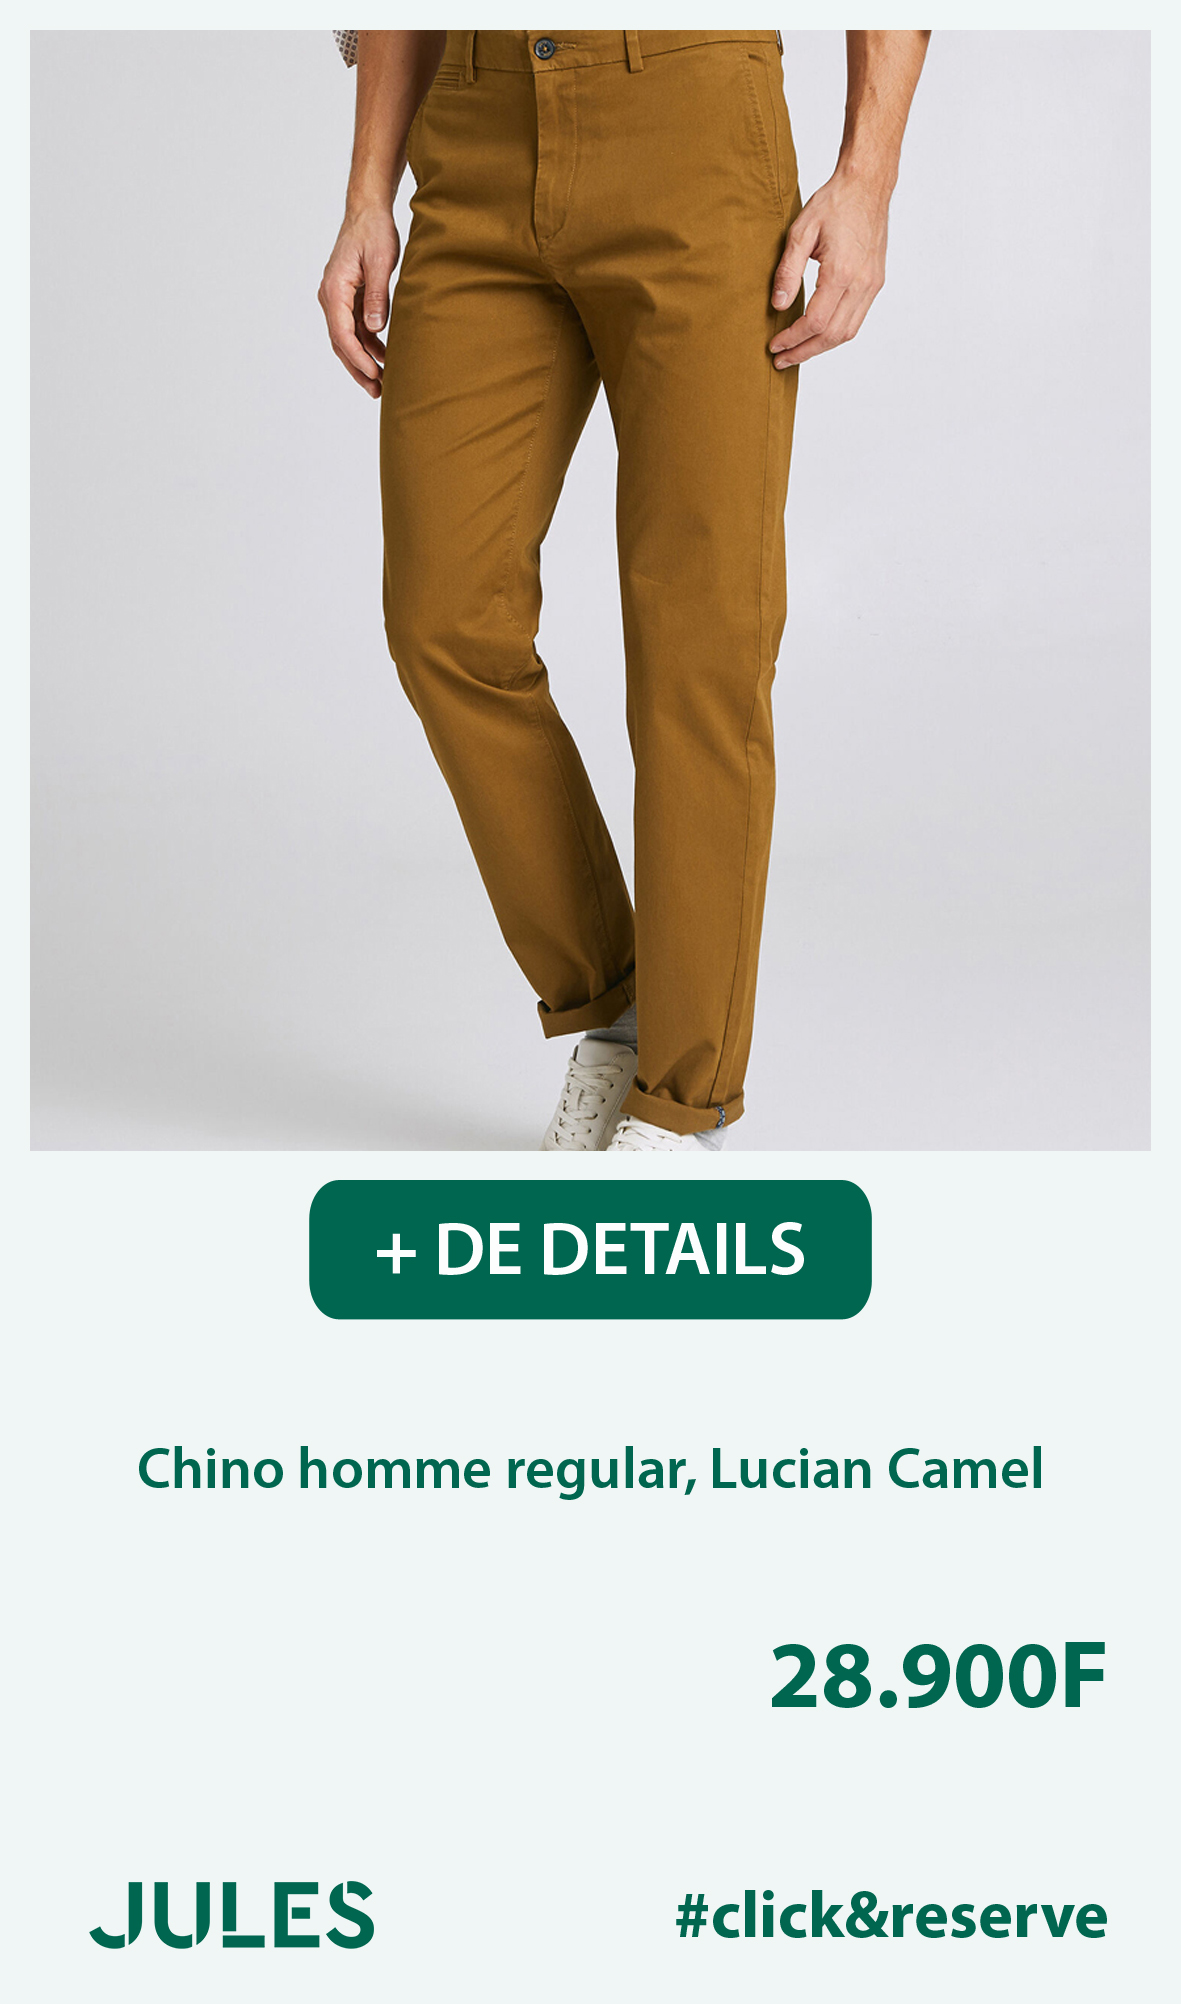 Chino homme regular, Lucian Camel